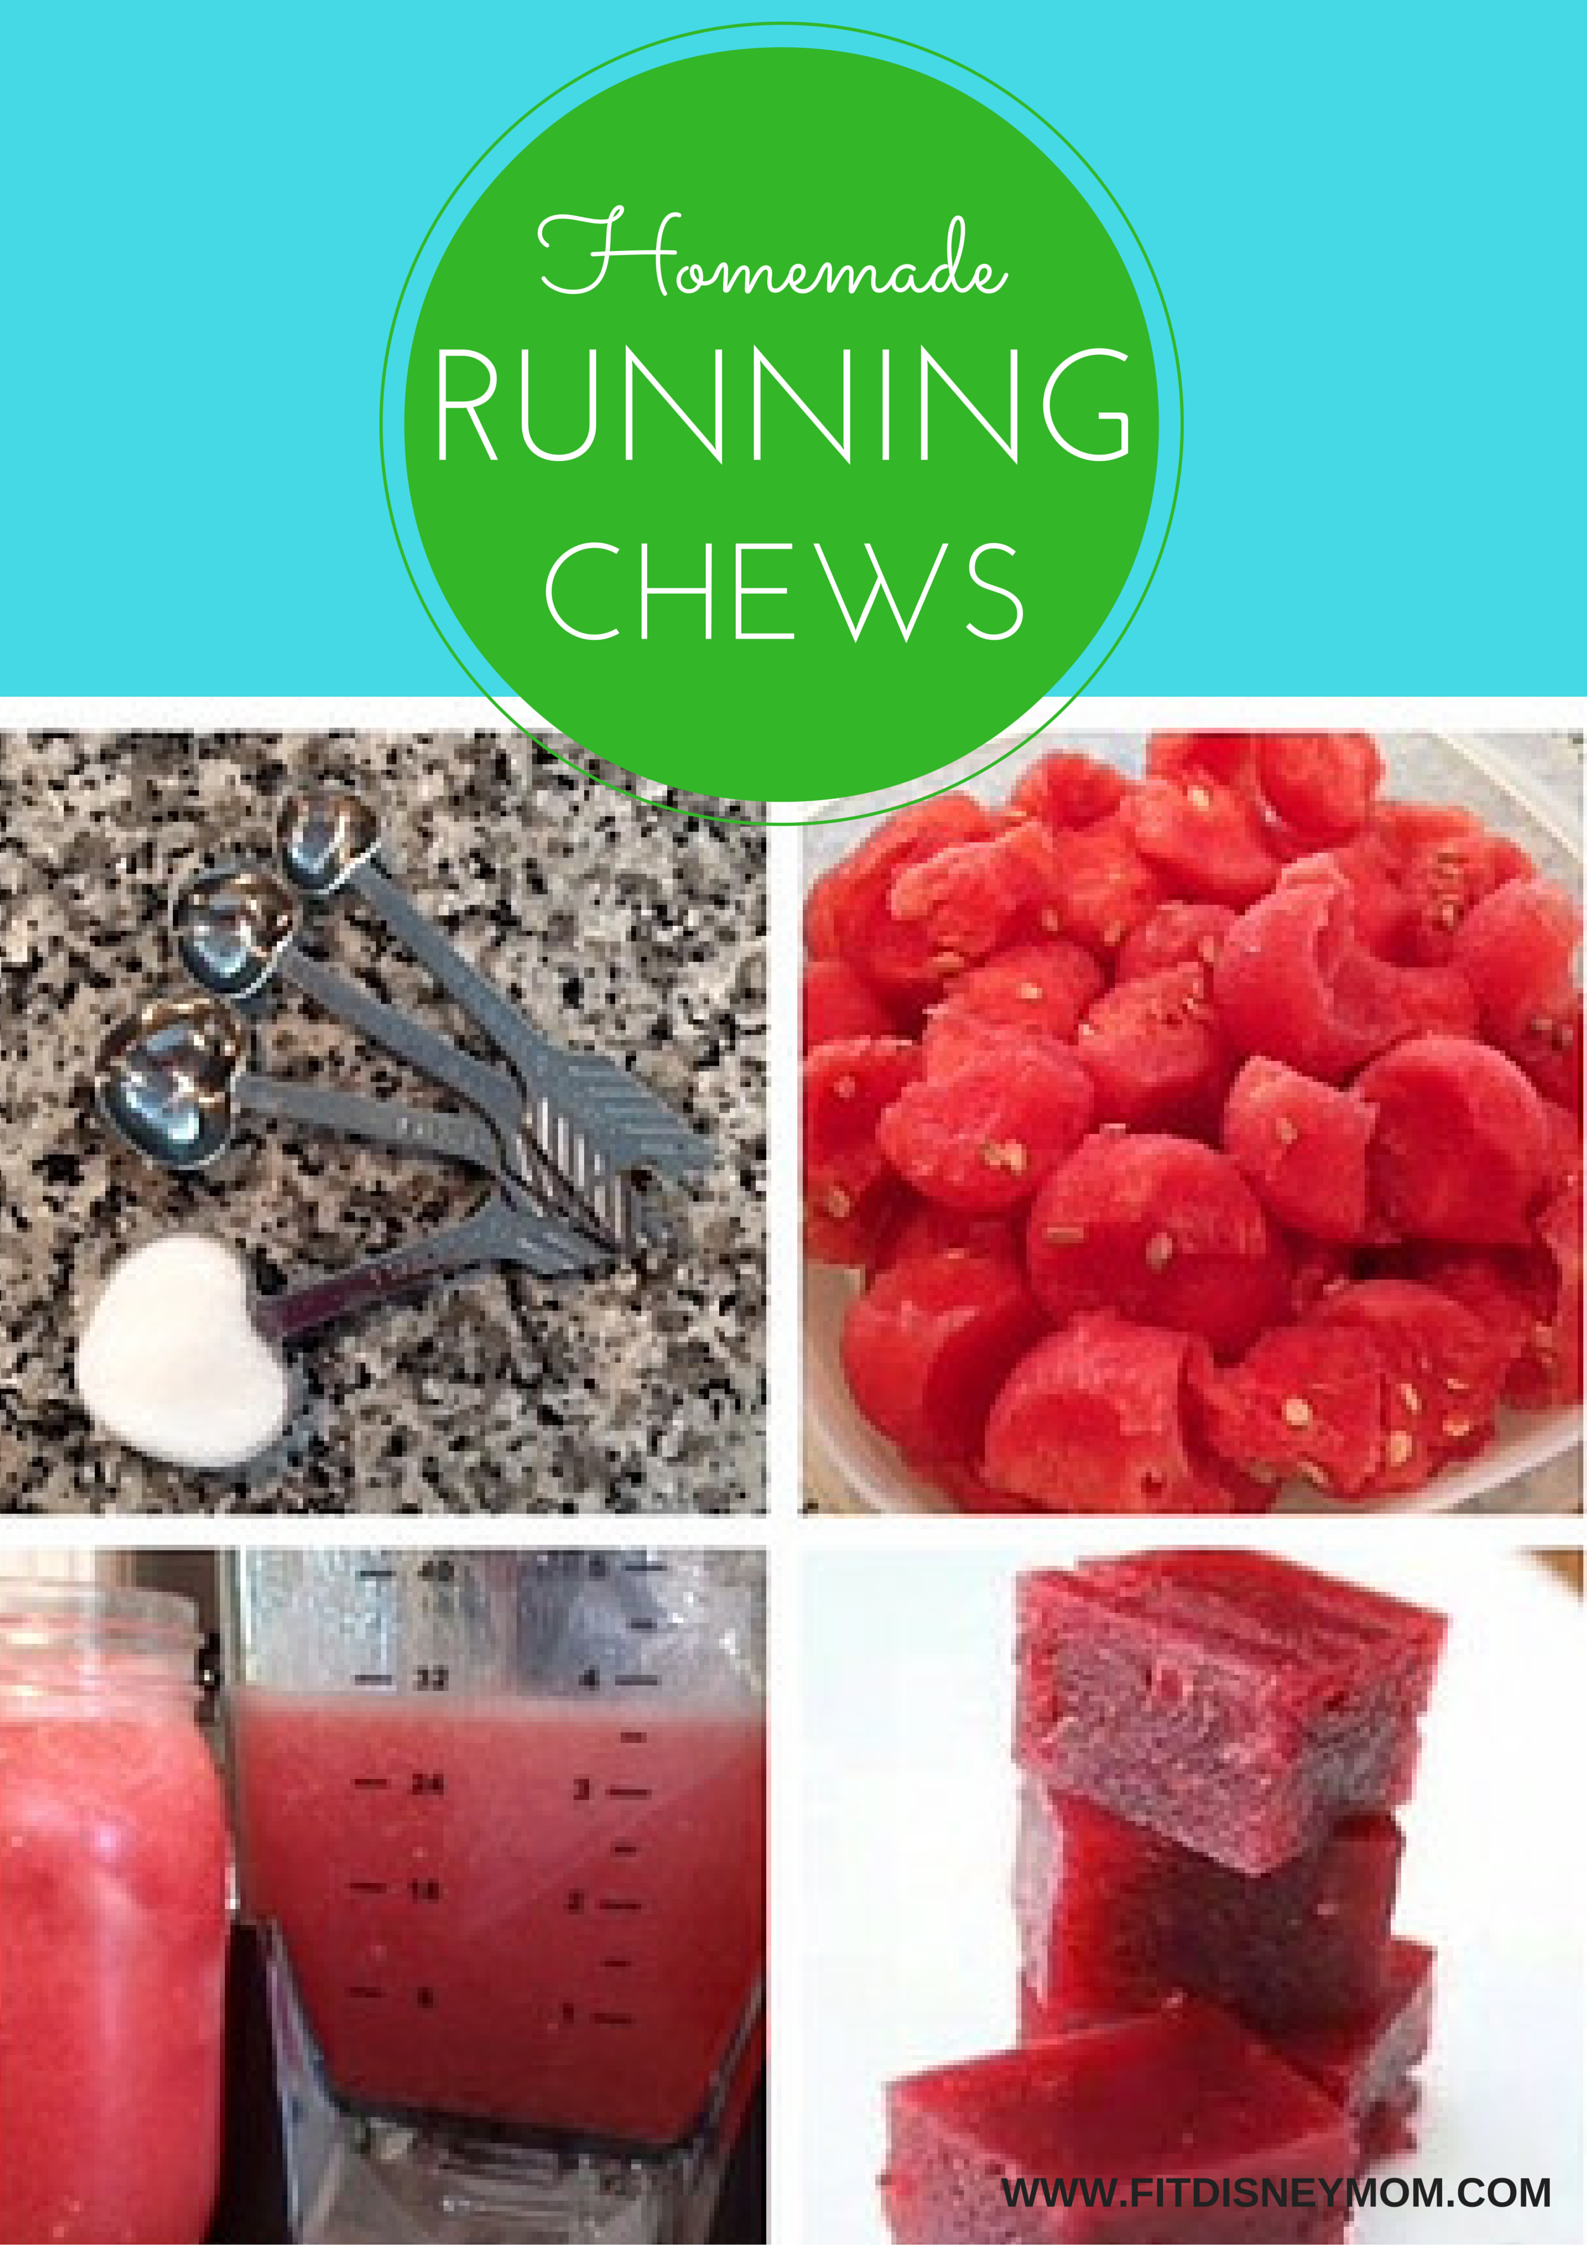 Homemade Watermelon Running Chews, Running Fuel, Homemade Running Fuel, Energy Chews, Running Fuel